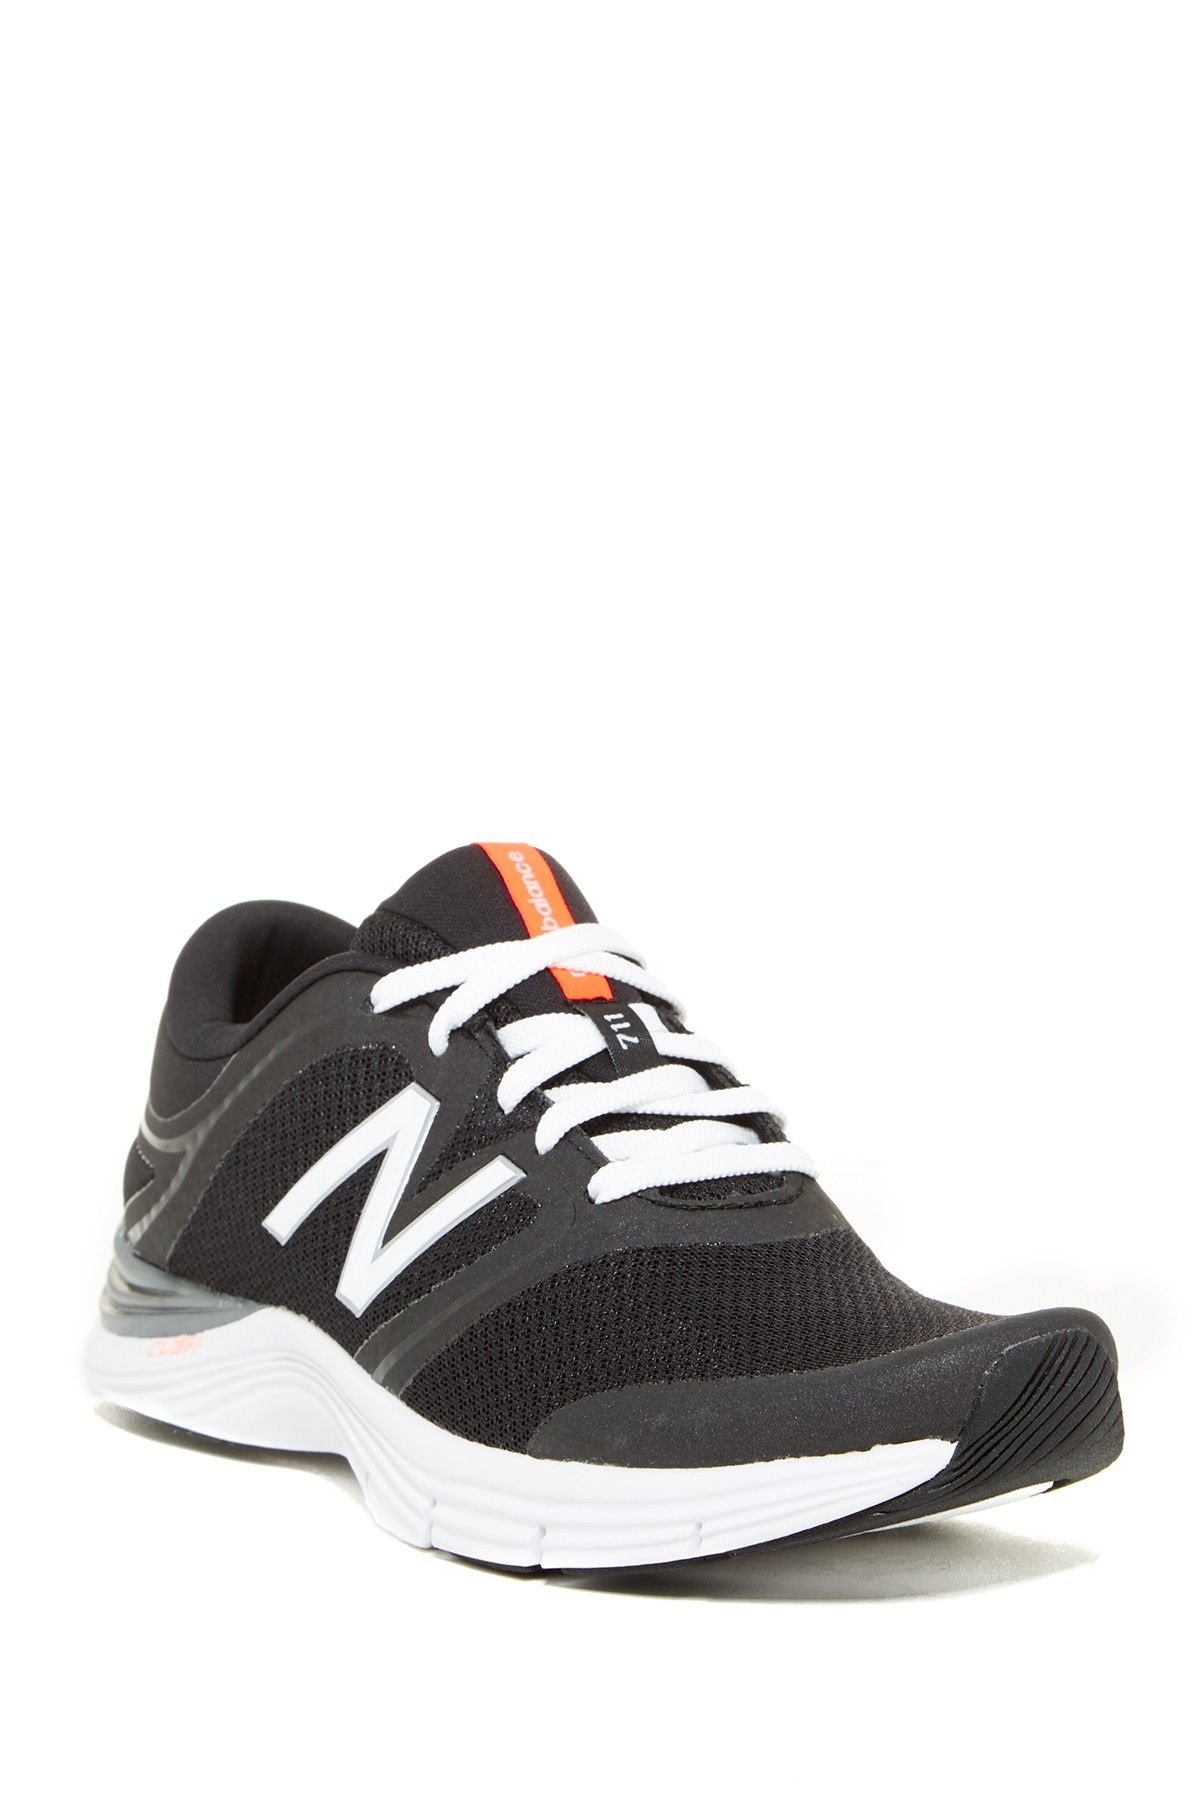 5eb30da1ce1 New Balance - 711 Training Shoe - Multiple Widths Available at Nordstrom  Rack. Free Shipping on orders over  100.